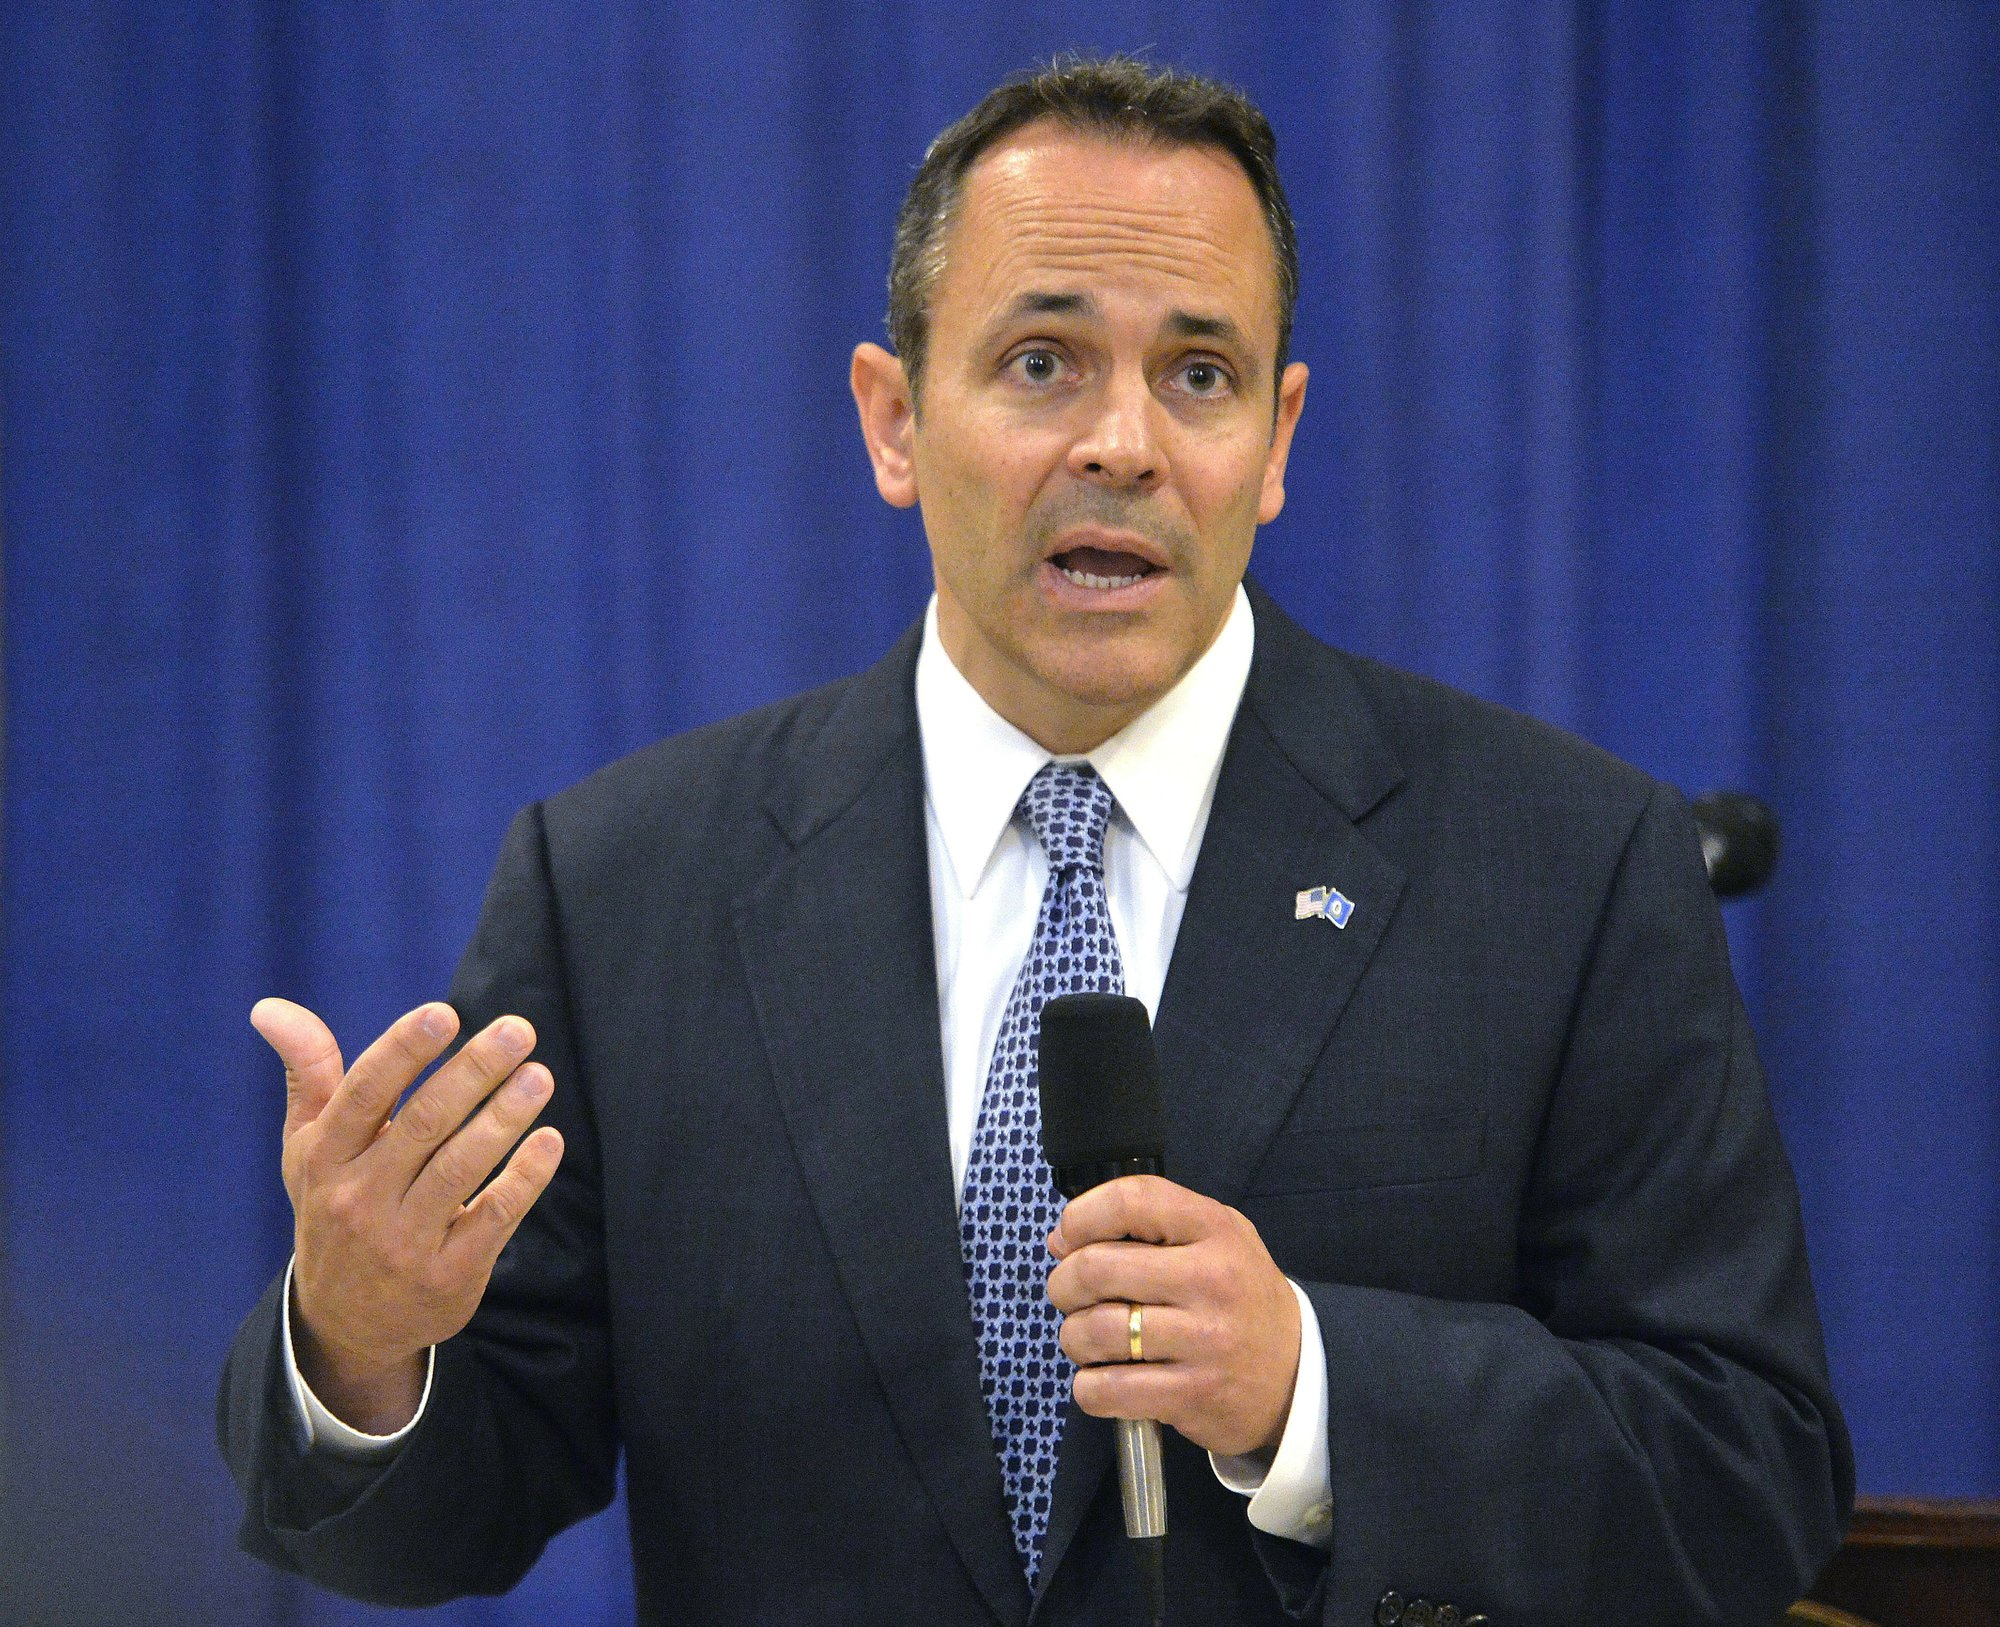 Kentucky governor faces voters after tumultuous term